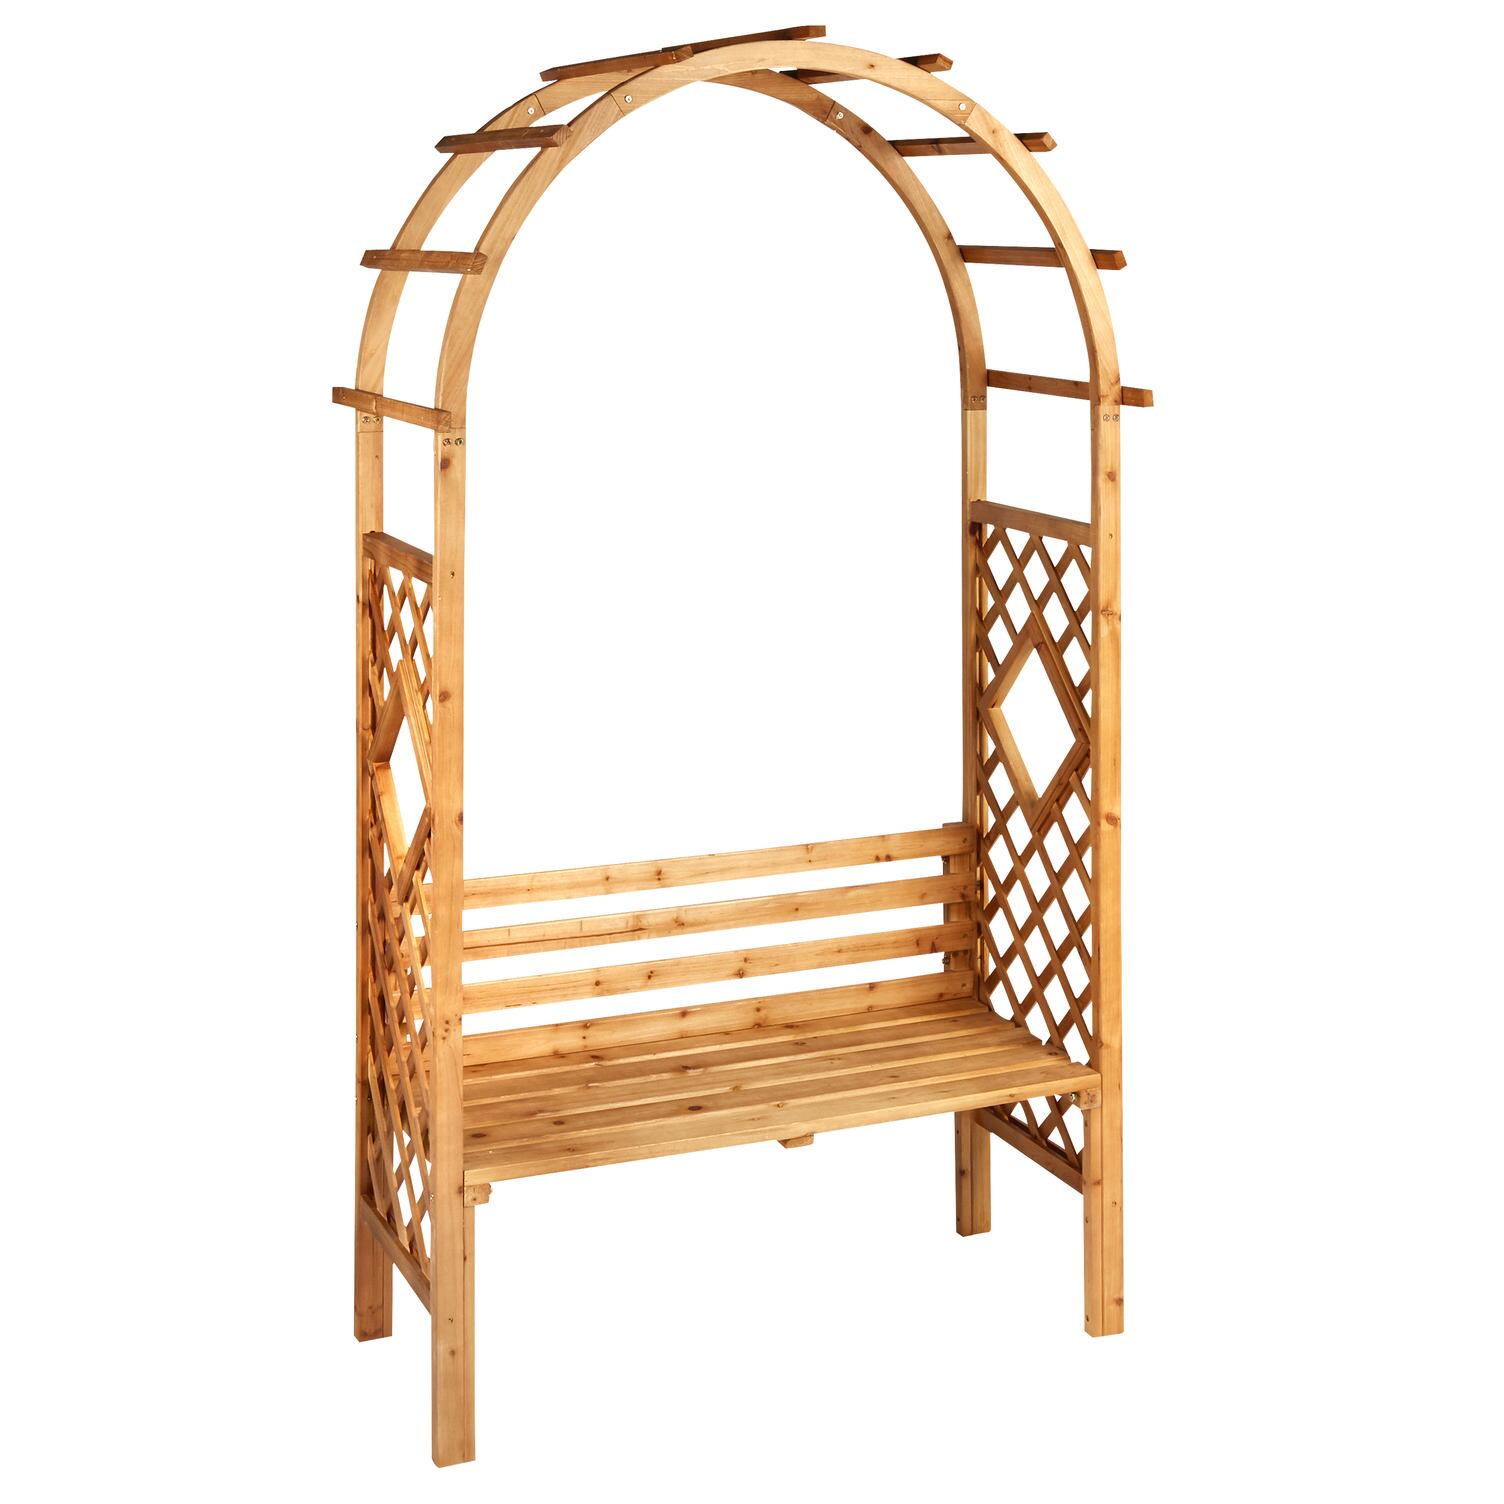 Awe Inspiring Cedar Wood Garden Arbor With Bench Pdpeps Interior Chair Design Pdpepsorg